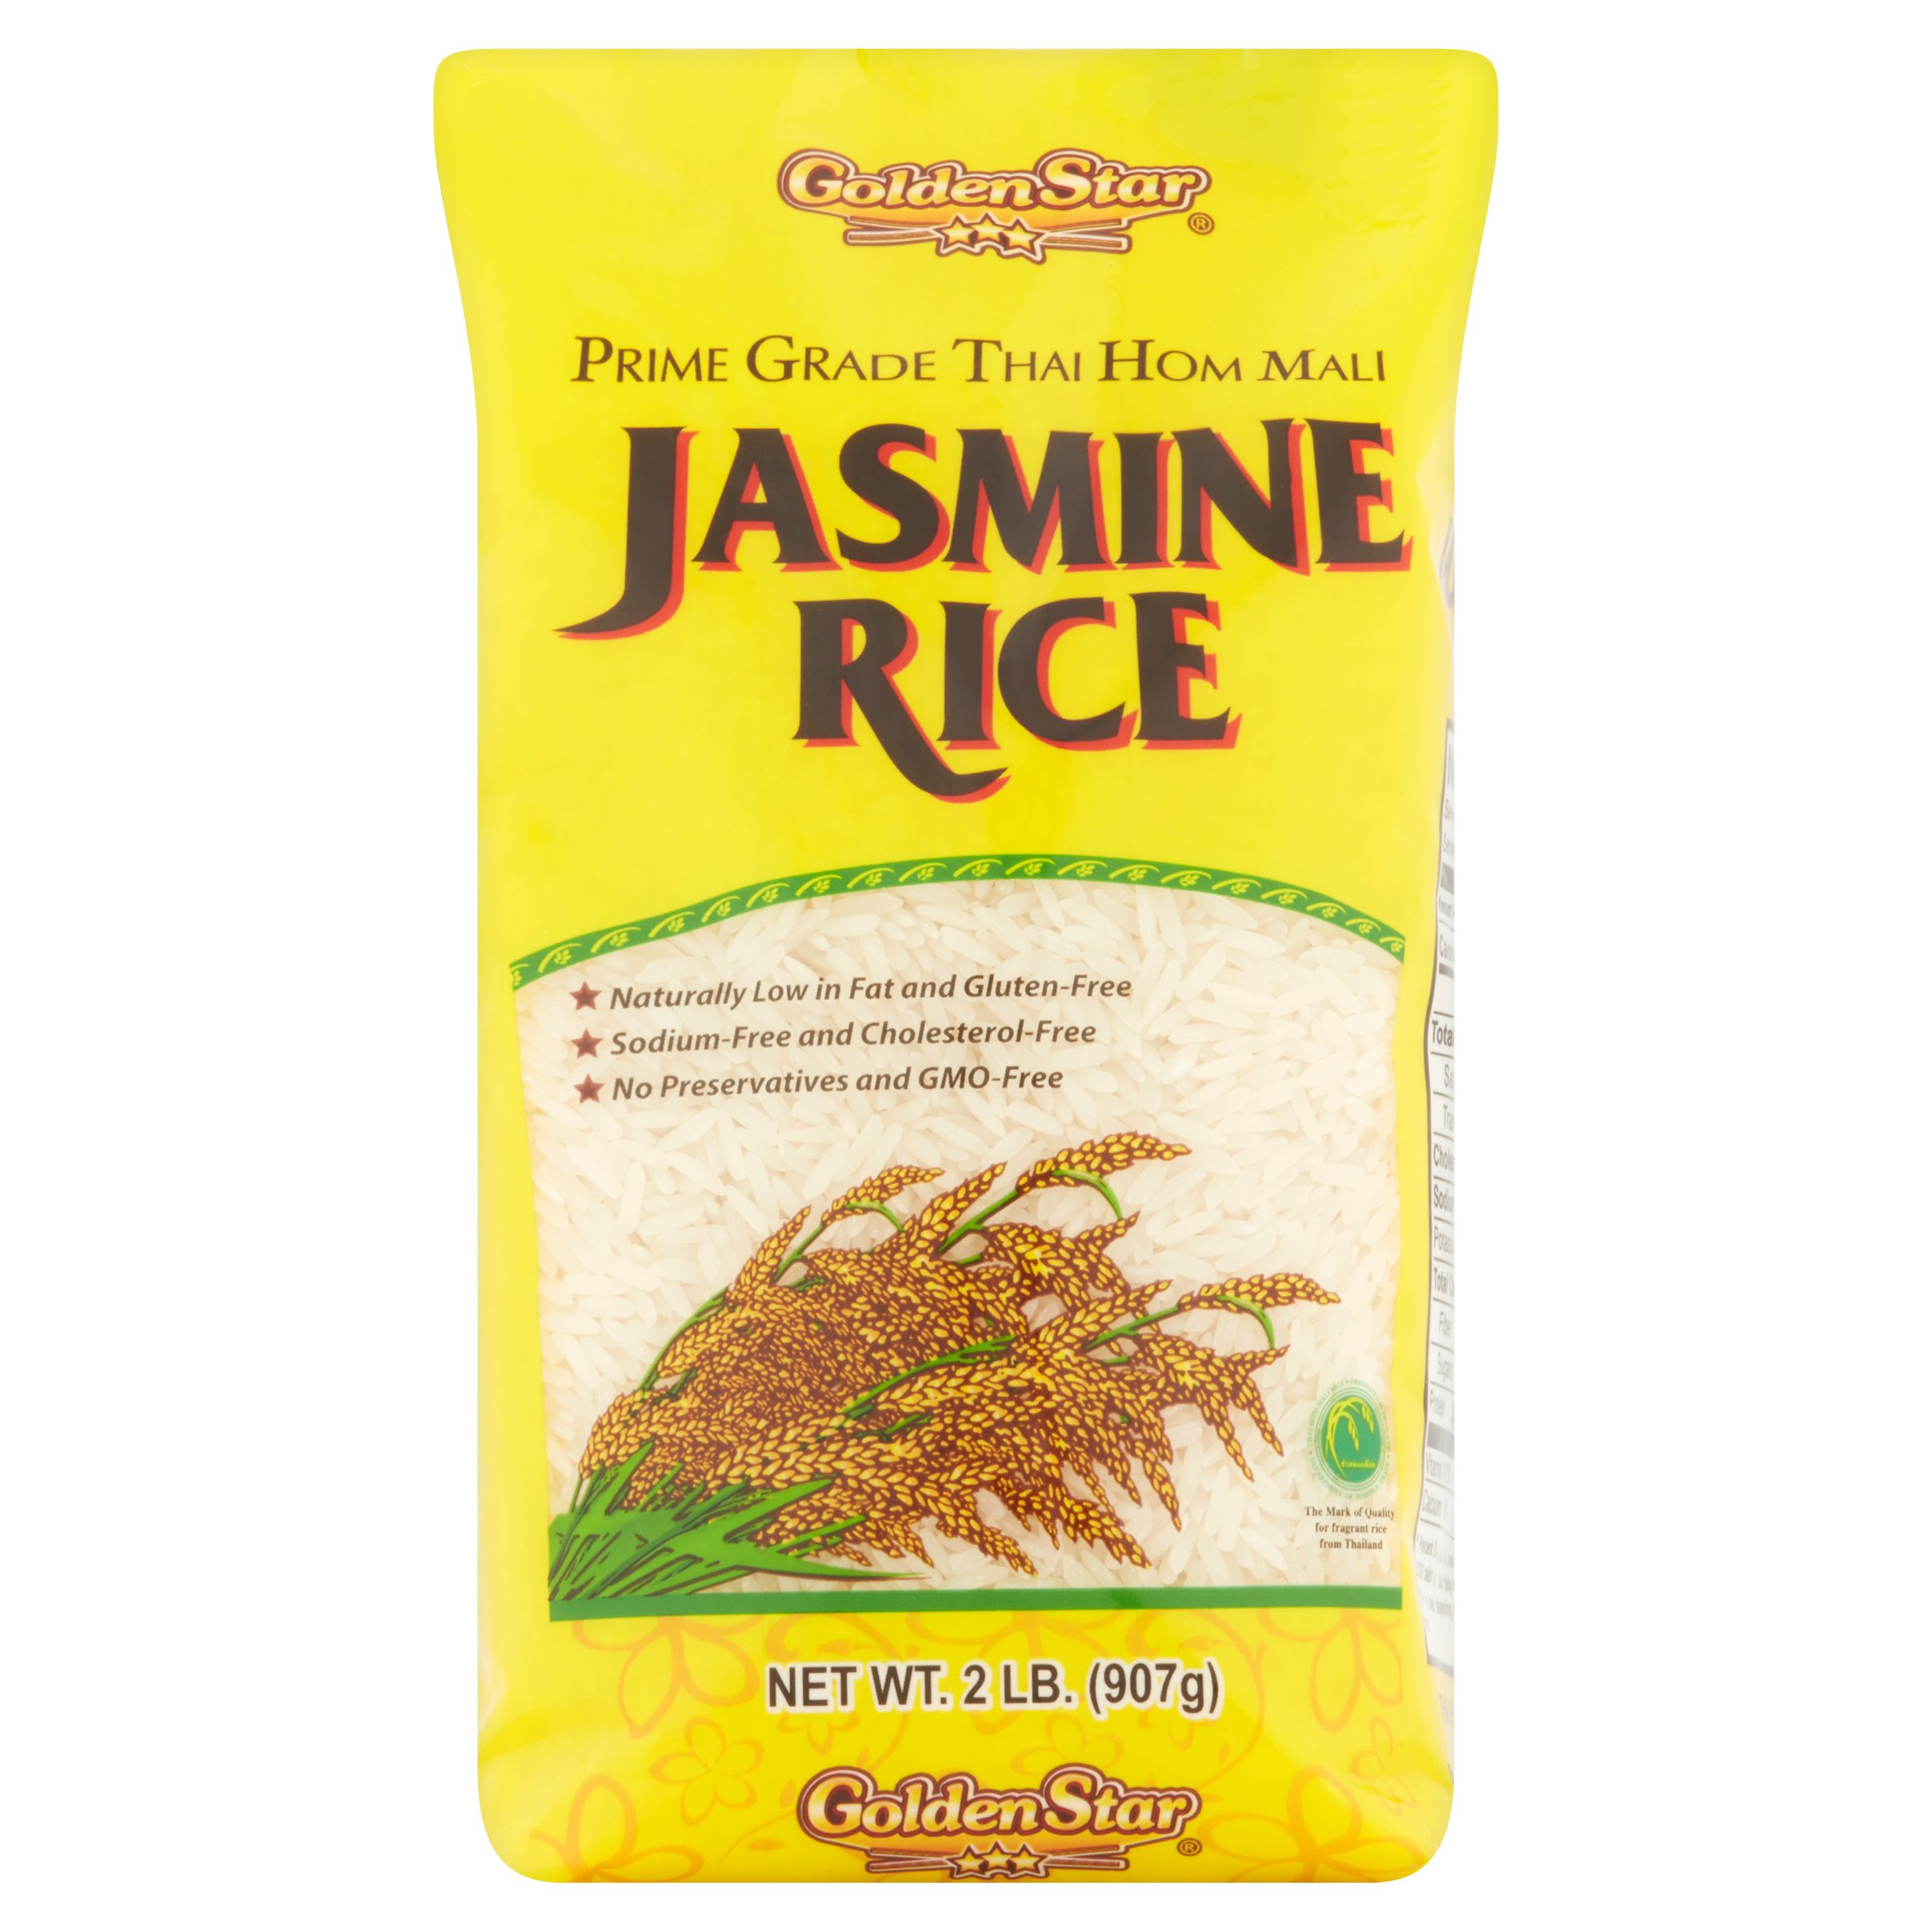 Golden Star Prime Grade Thai Hom Mali Jasmine Rice, 2 Lb